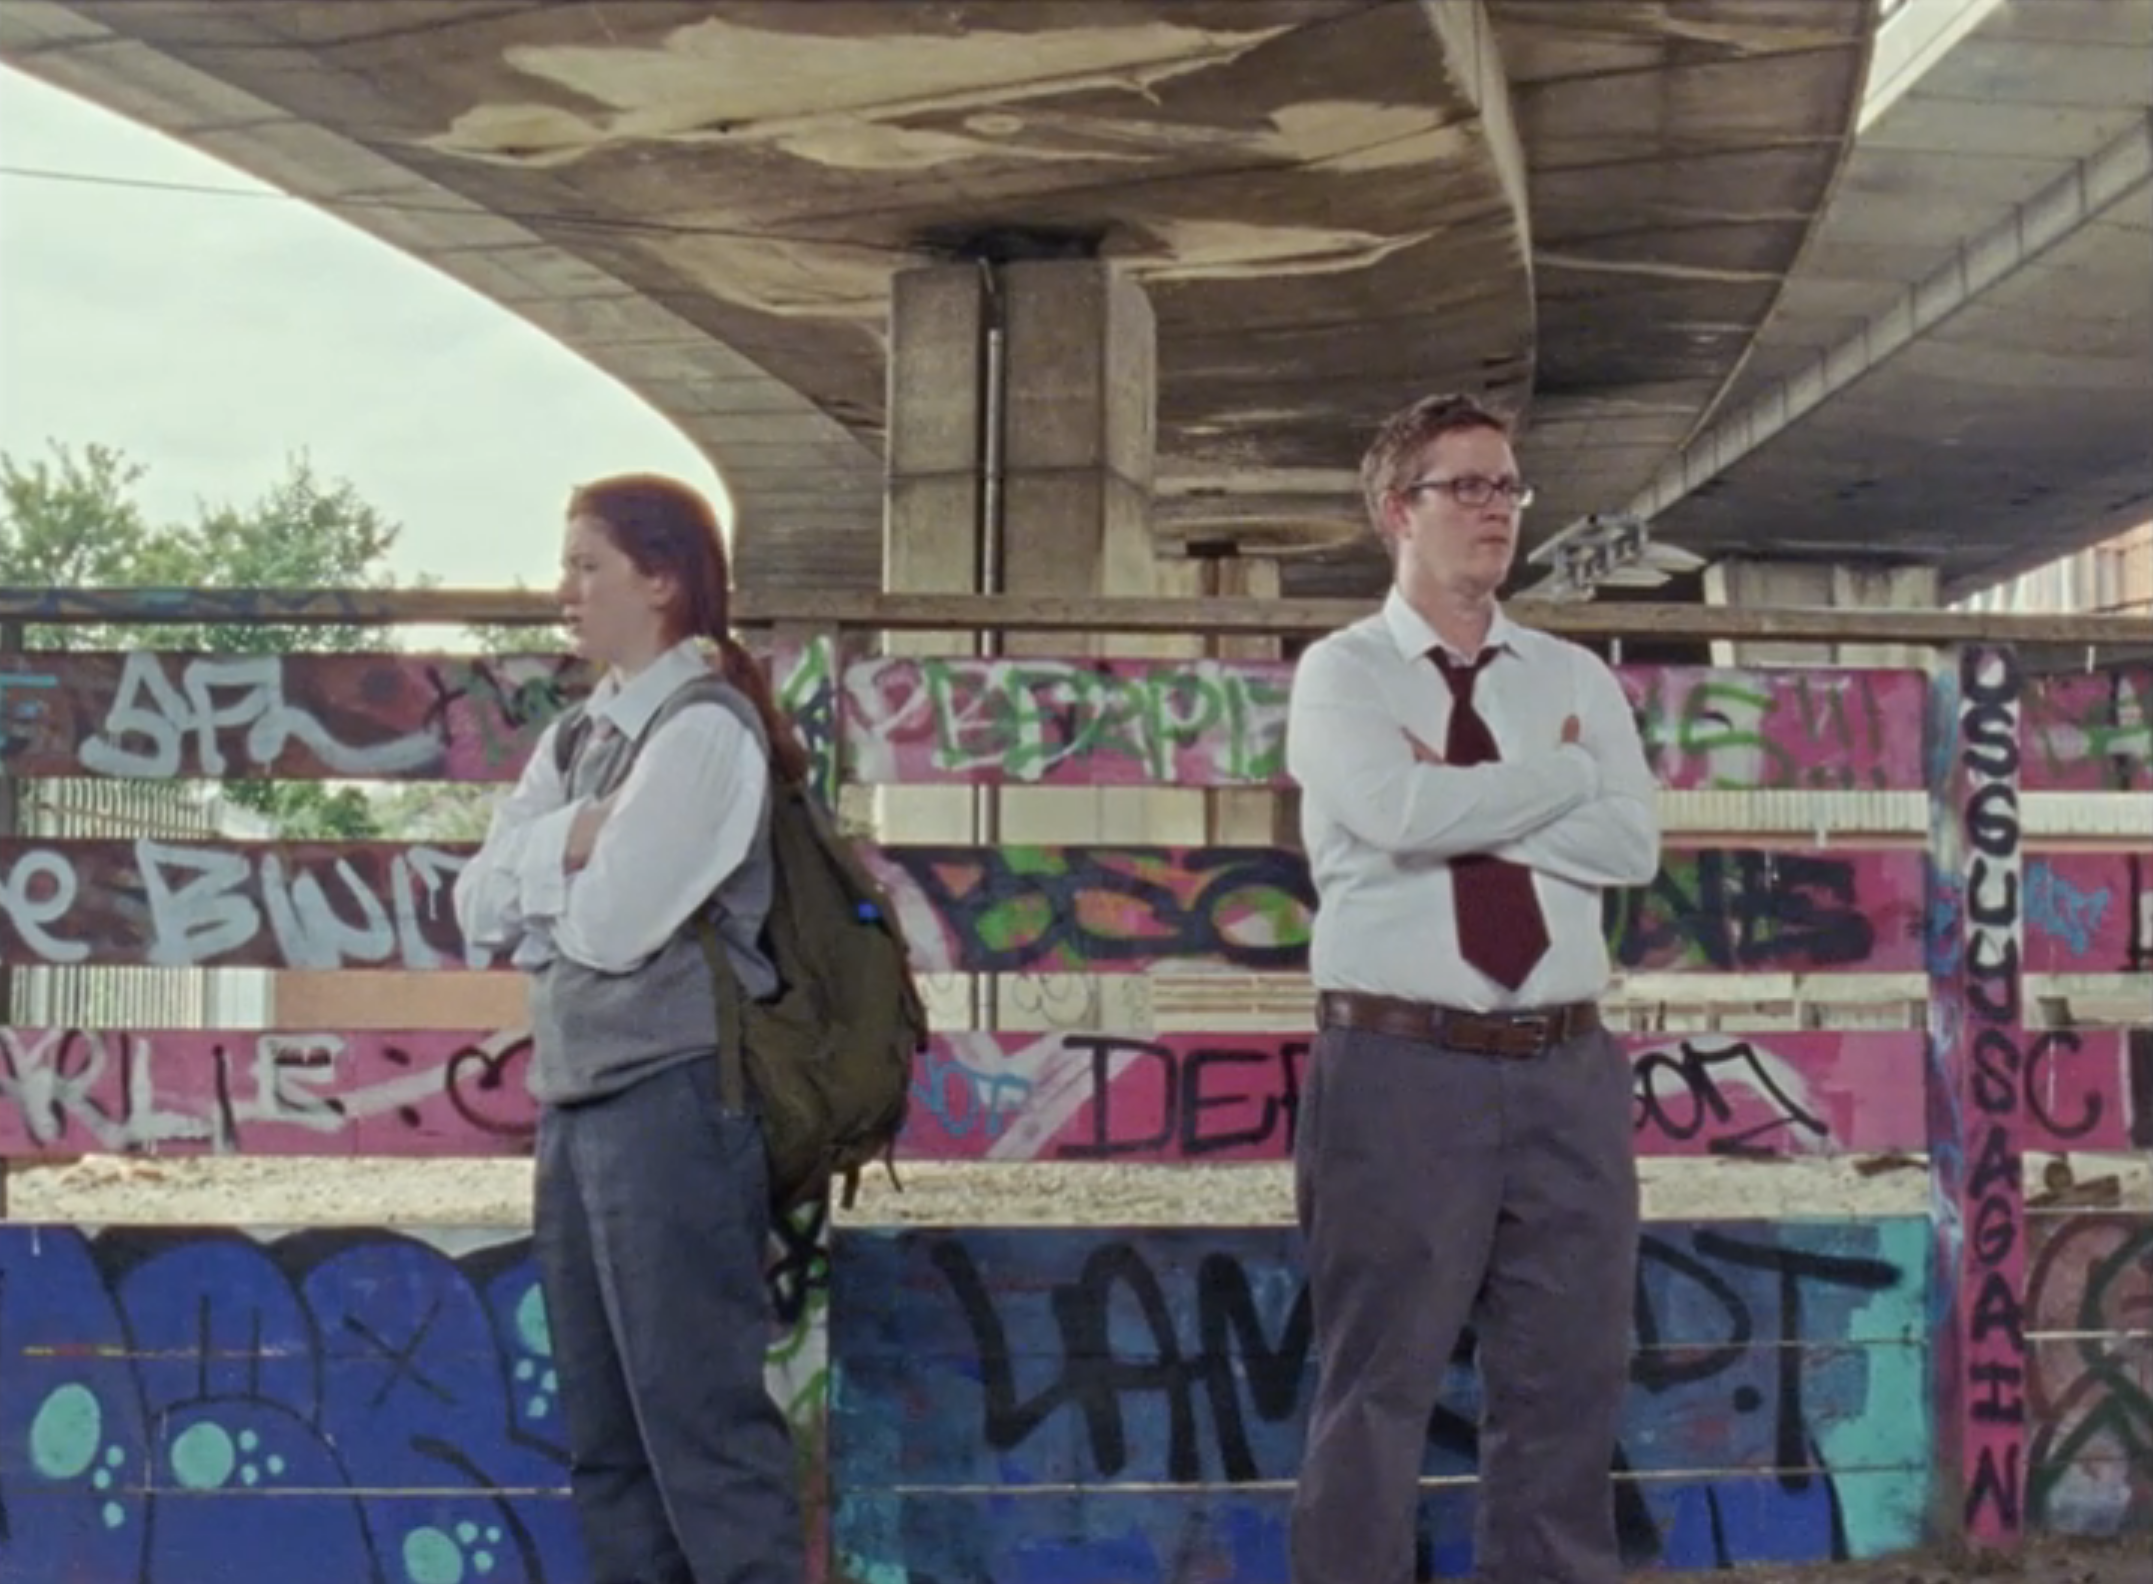 Jason Barker and Ciara Baxendale on location under the Westway in London